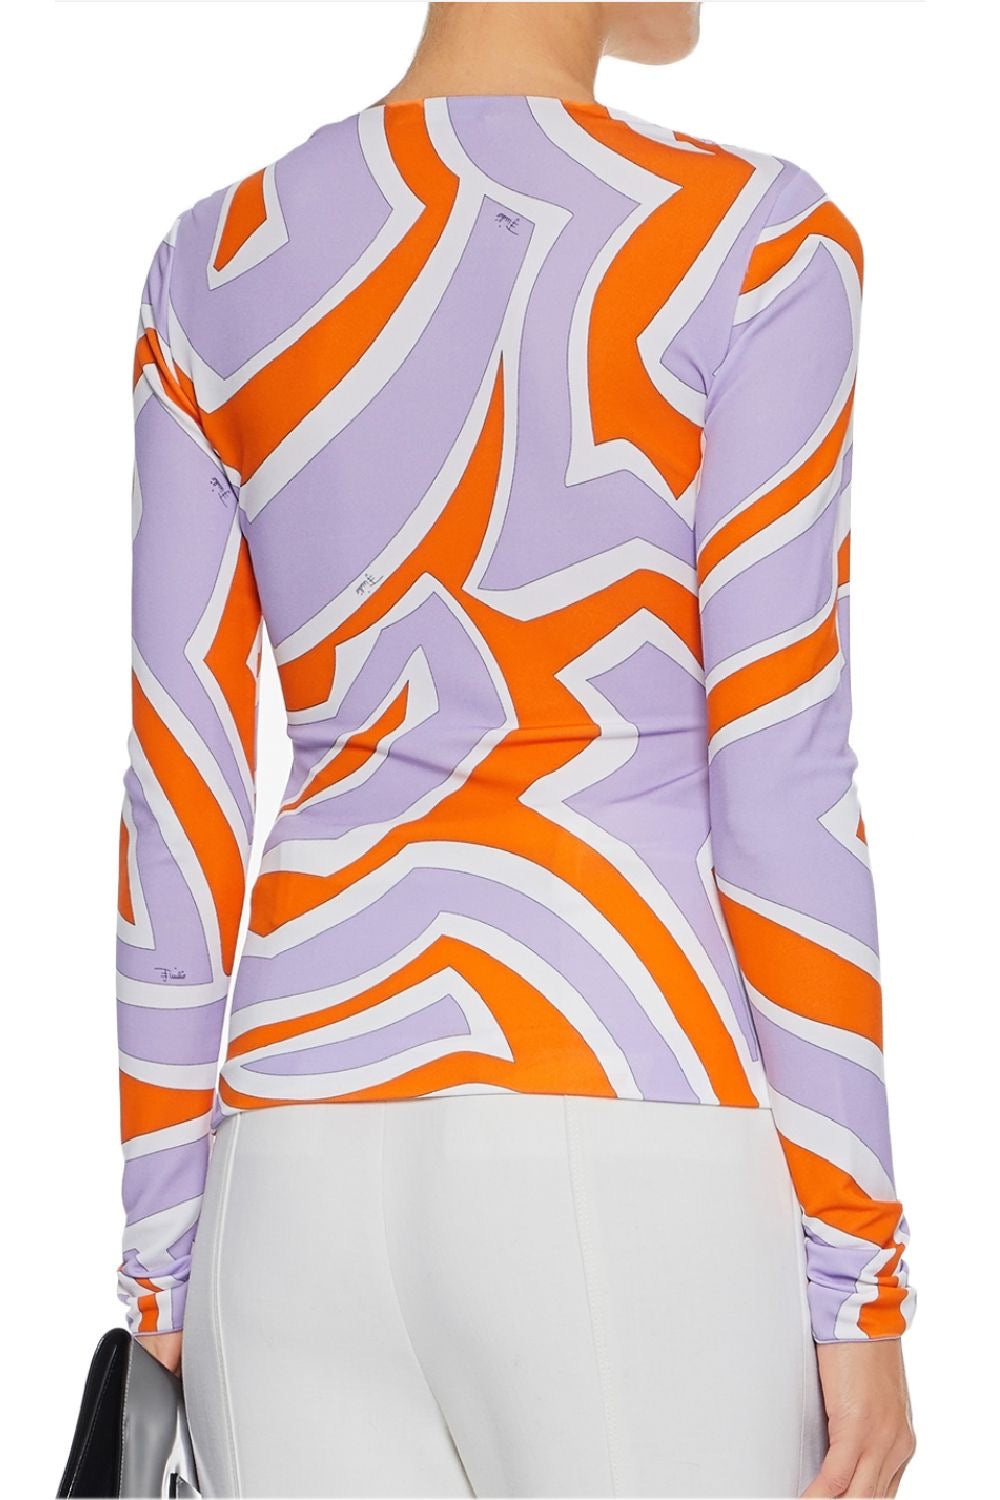 Labirinto Wrap-Effect Gathered Stretch Jersey Top - The Bobby Boga